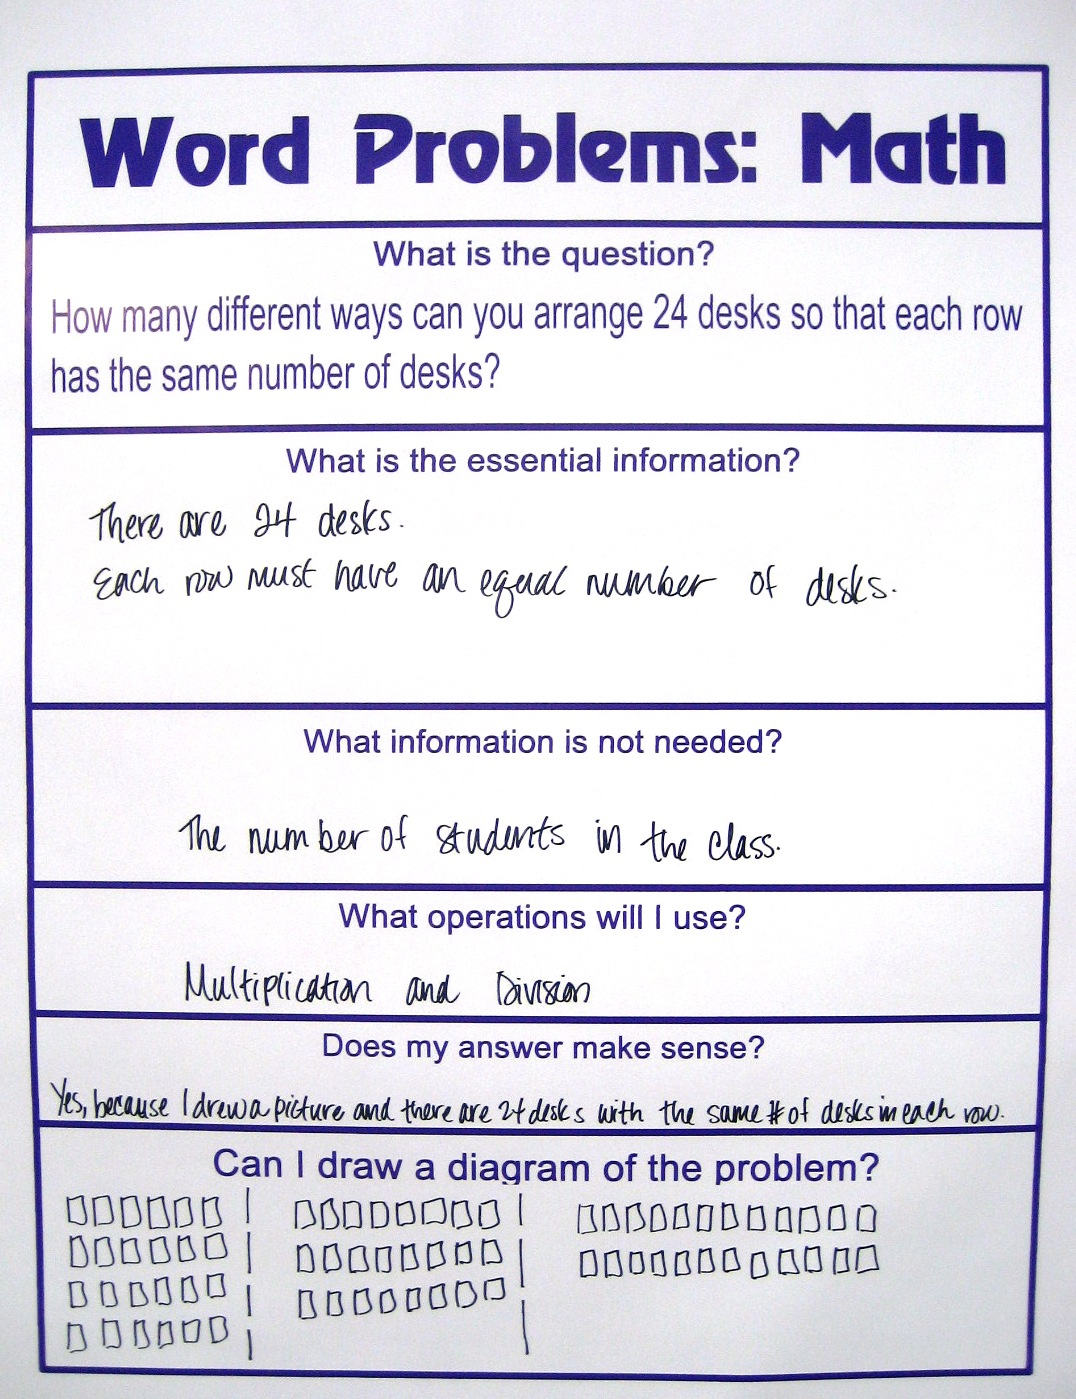 solve math word problems